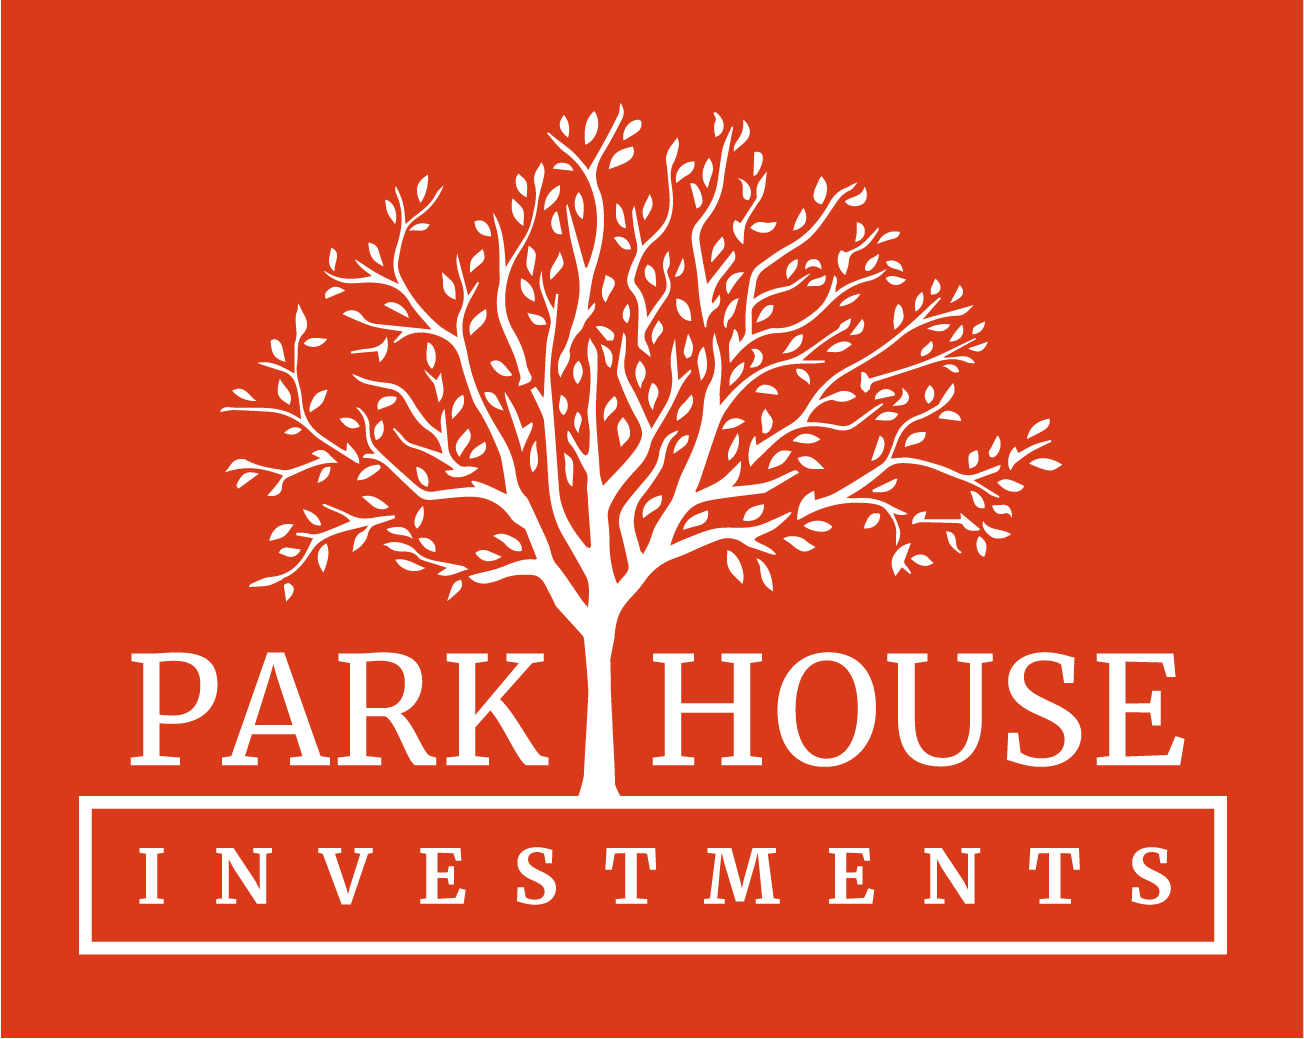 Park House Investments